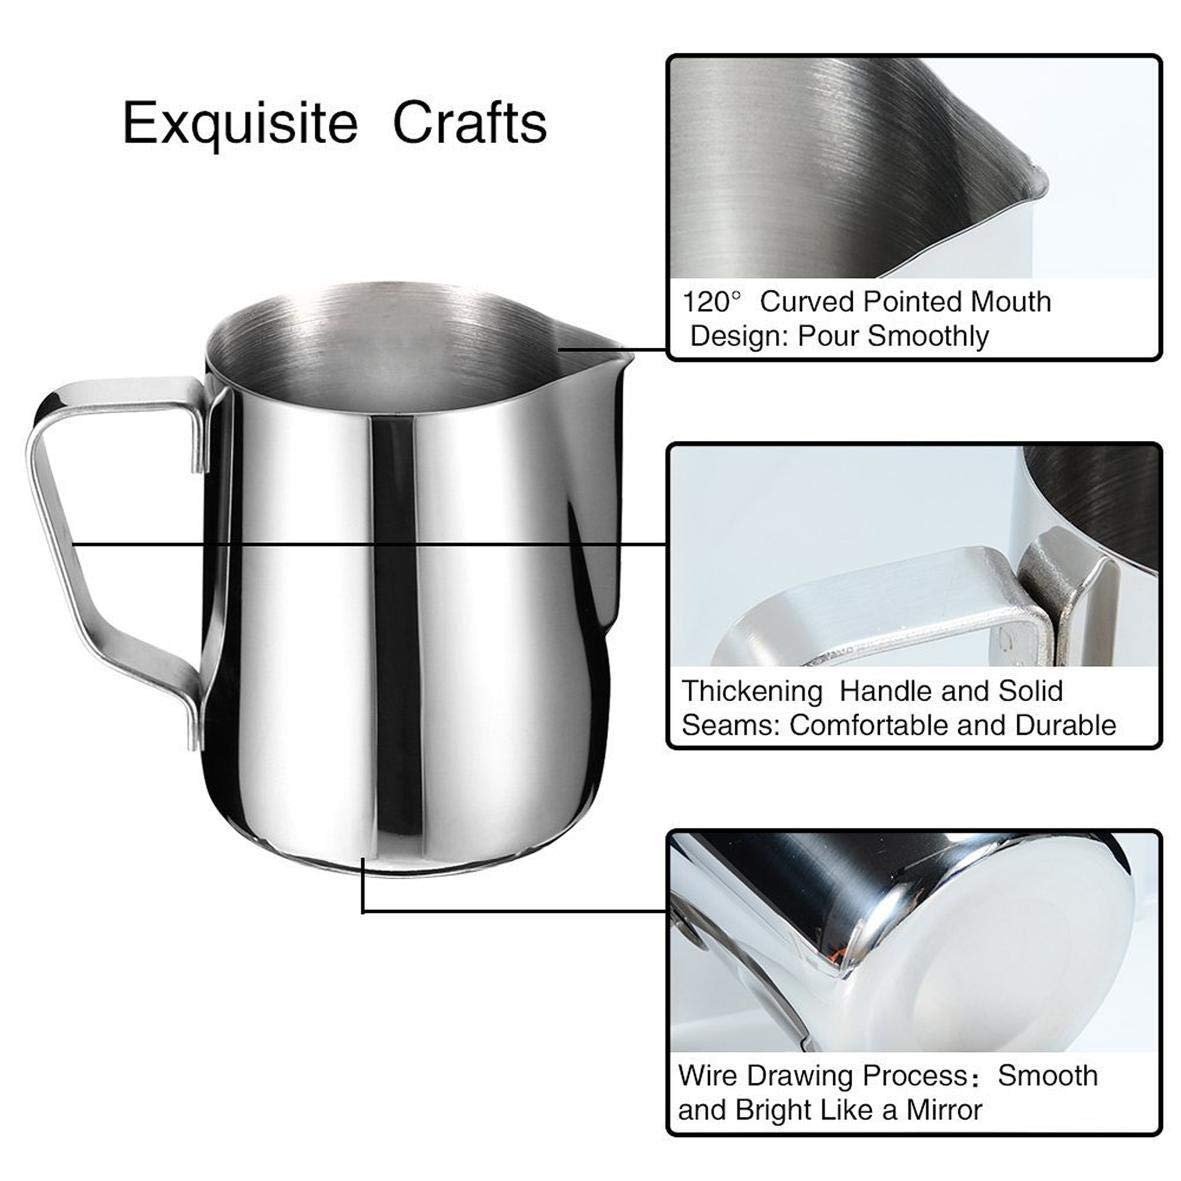 Latte Art Juices Cream Access-FRH Milk Frothing Pitcher 20 oz 600 ml Stainless Steel Steamer Cup Foam Making for Espresso Milk Frothers